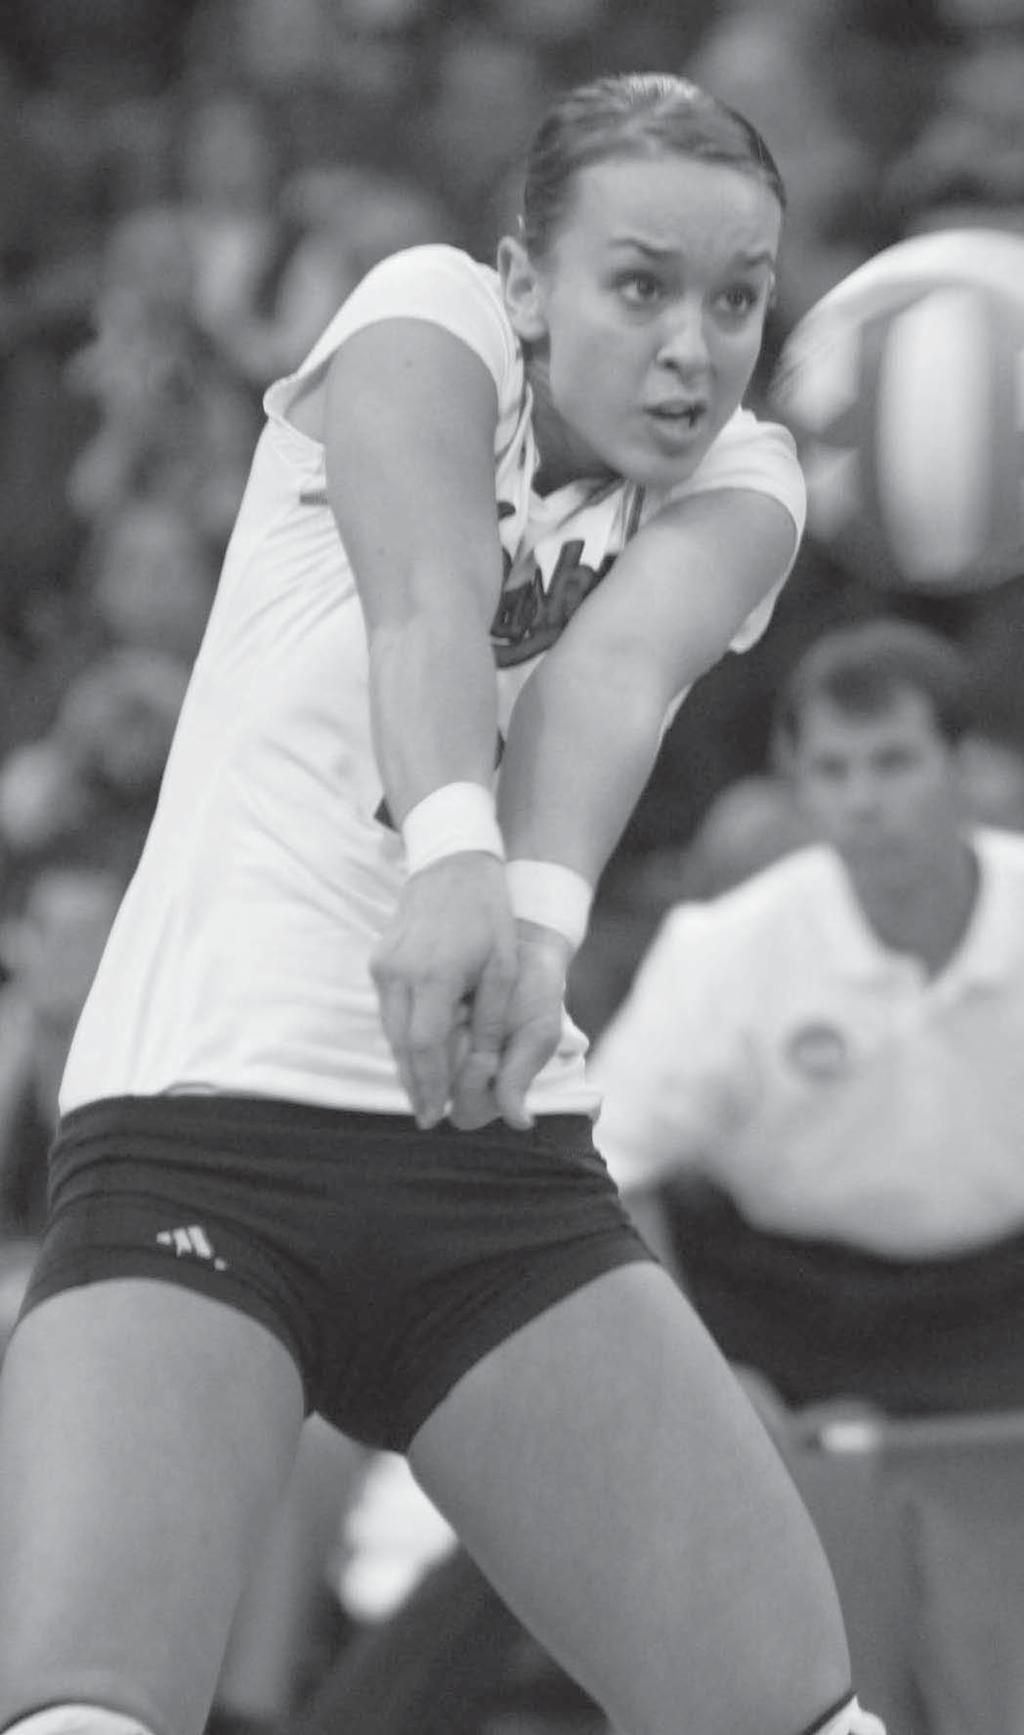 2009 PLAYERS Career Match-by-Match 2007 Season Date Opponent K E TA.Pct A SA D BL Aug. 24 vs. Tennessee 0 0 0.000 0 0 0 0 Sept. 3 CAL POLY 0 0 0.000 0 0 0 0 Sept. 26 at Kansas 0 0 0.000 2 0 5 0 Sept.